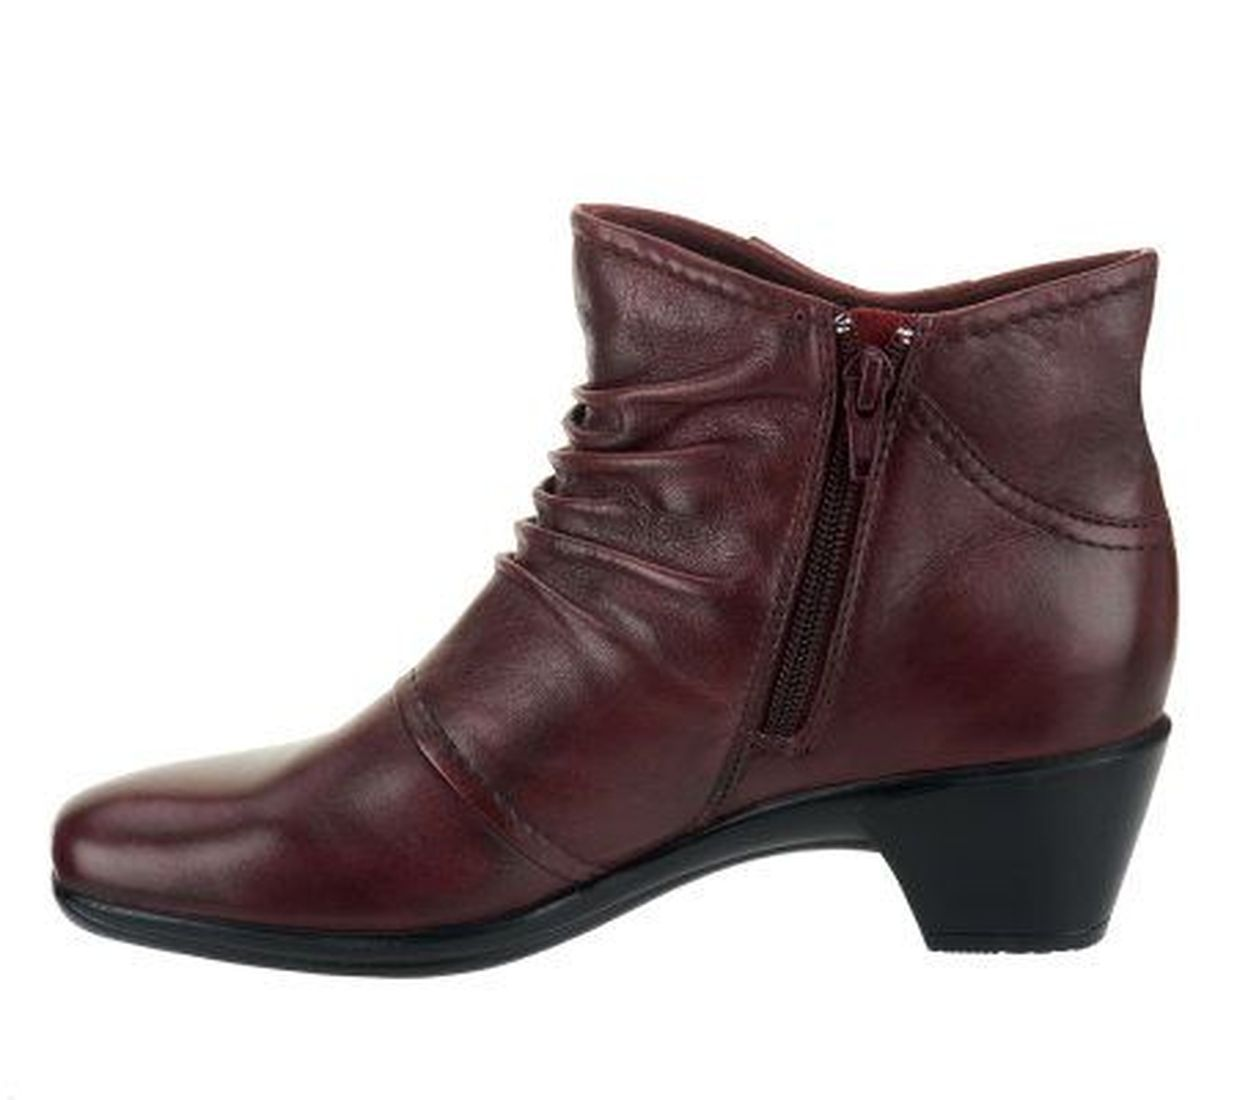 earth origins mallory leather ankle boots button accents